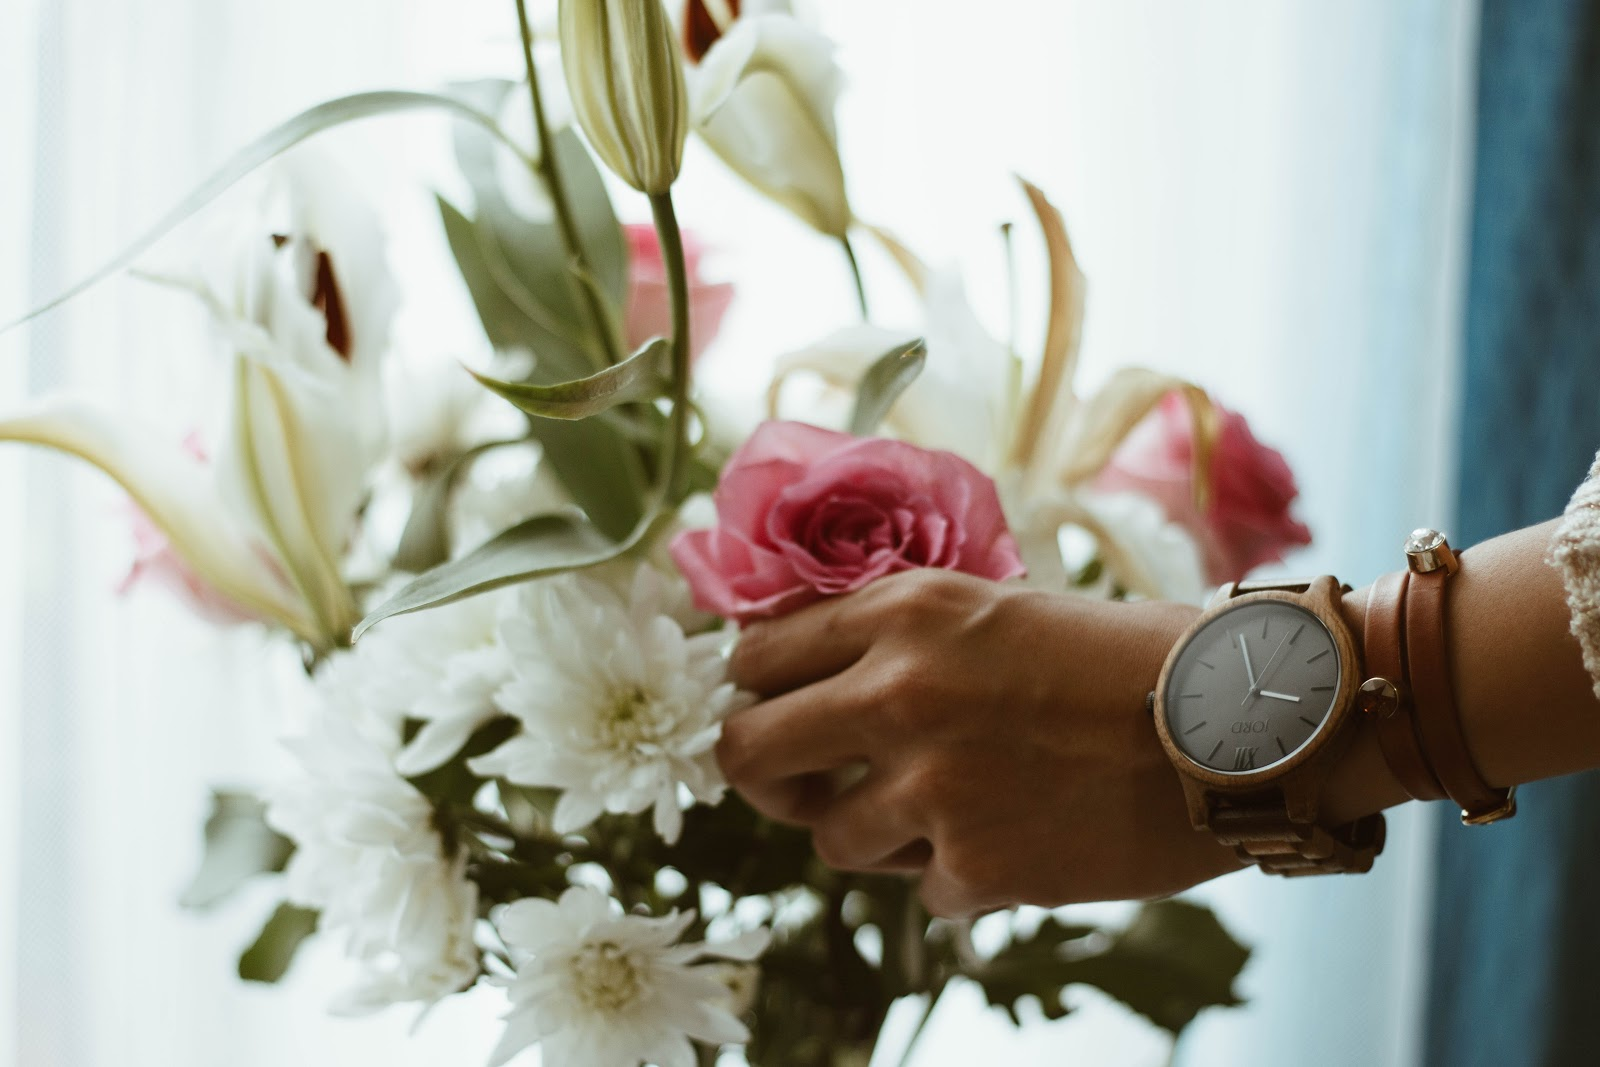 photo of watch as Valentine's day gift